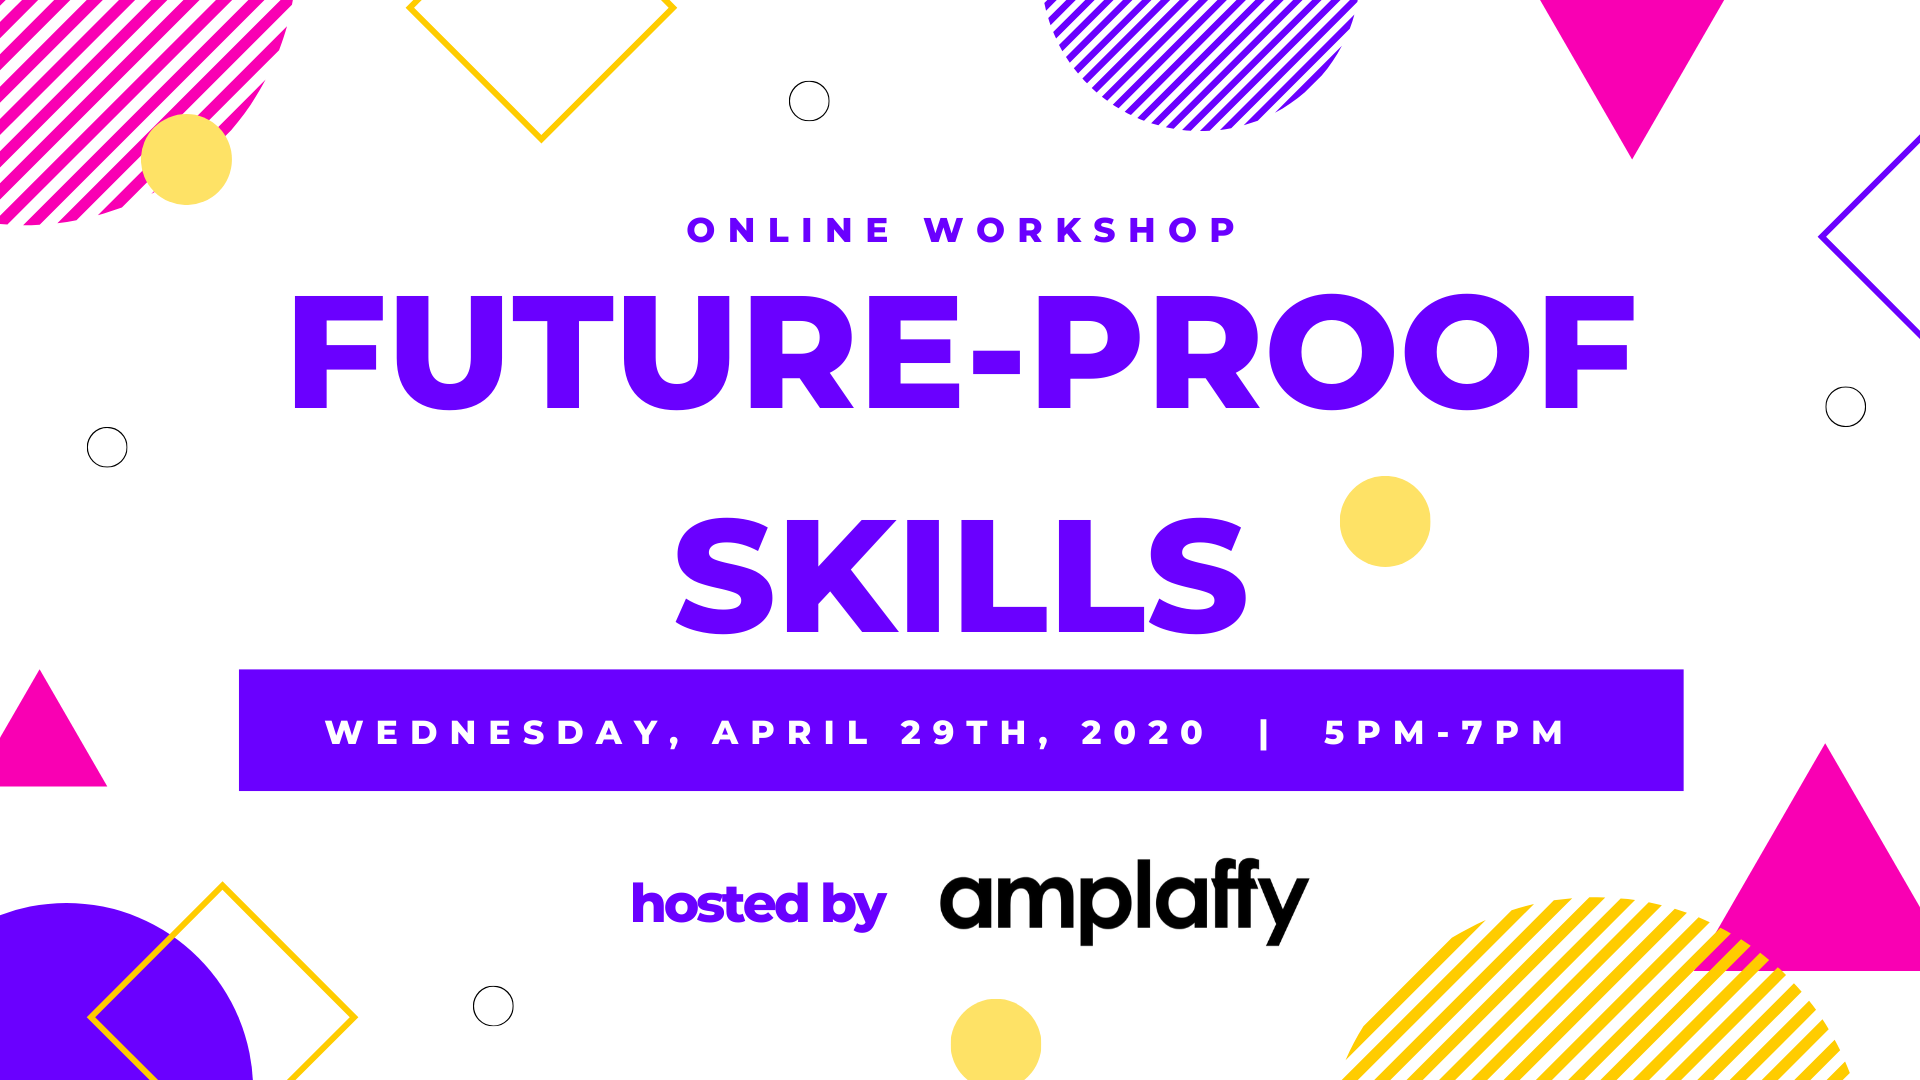 Read the key take aways of the Future-proof Skills Workshop